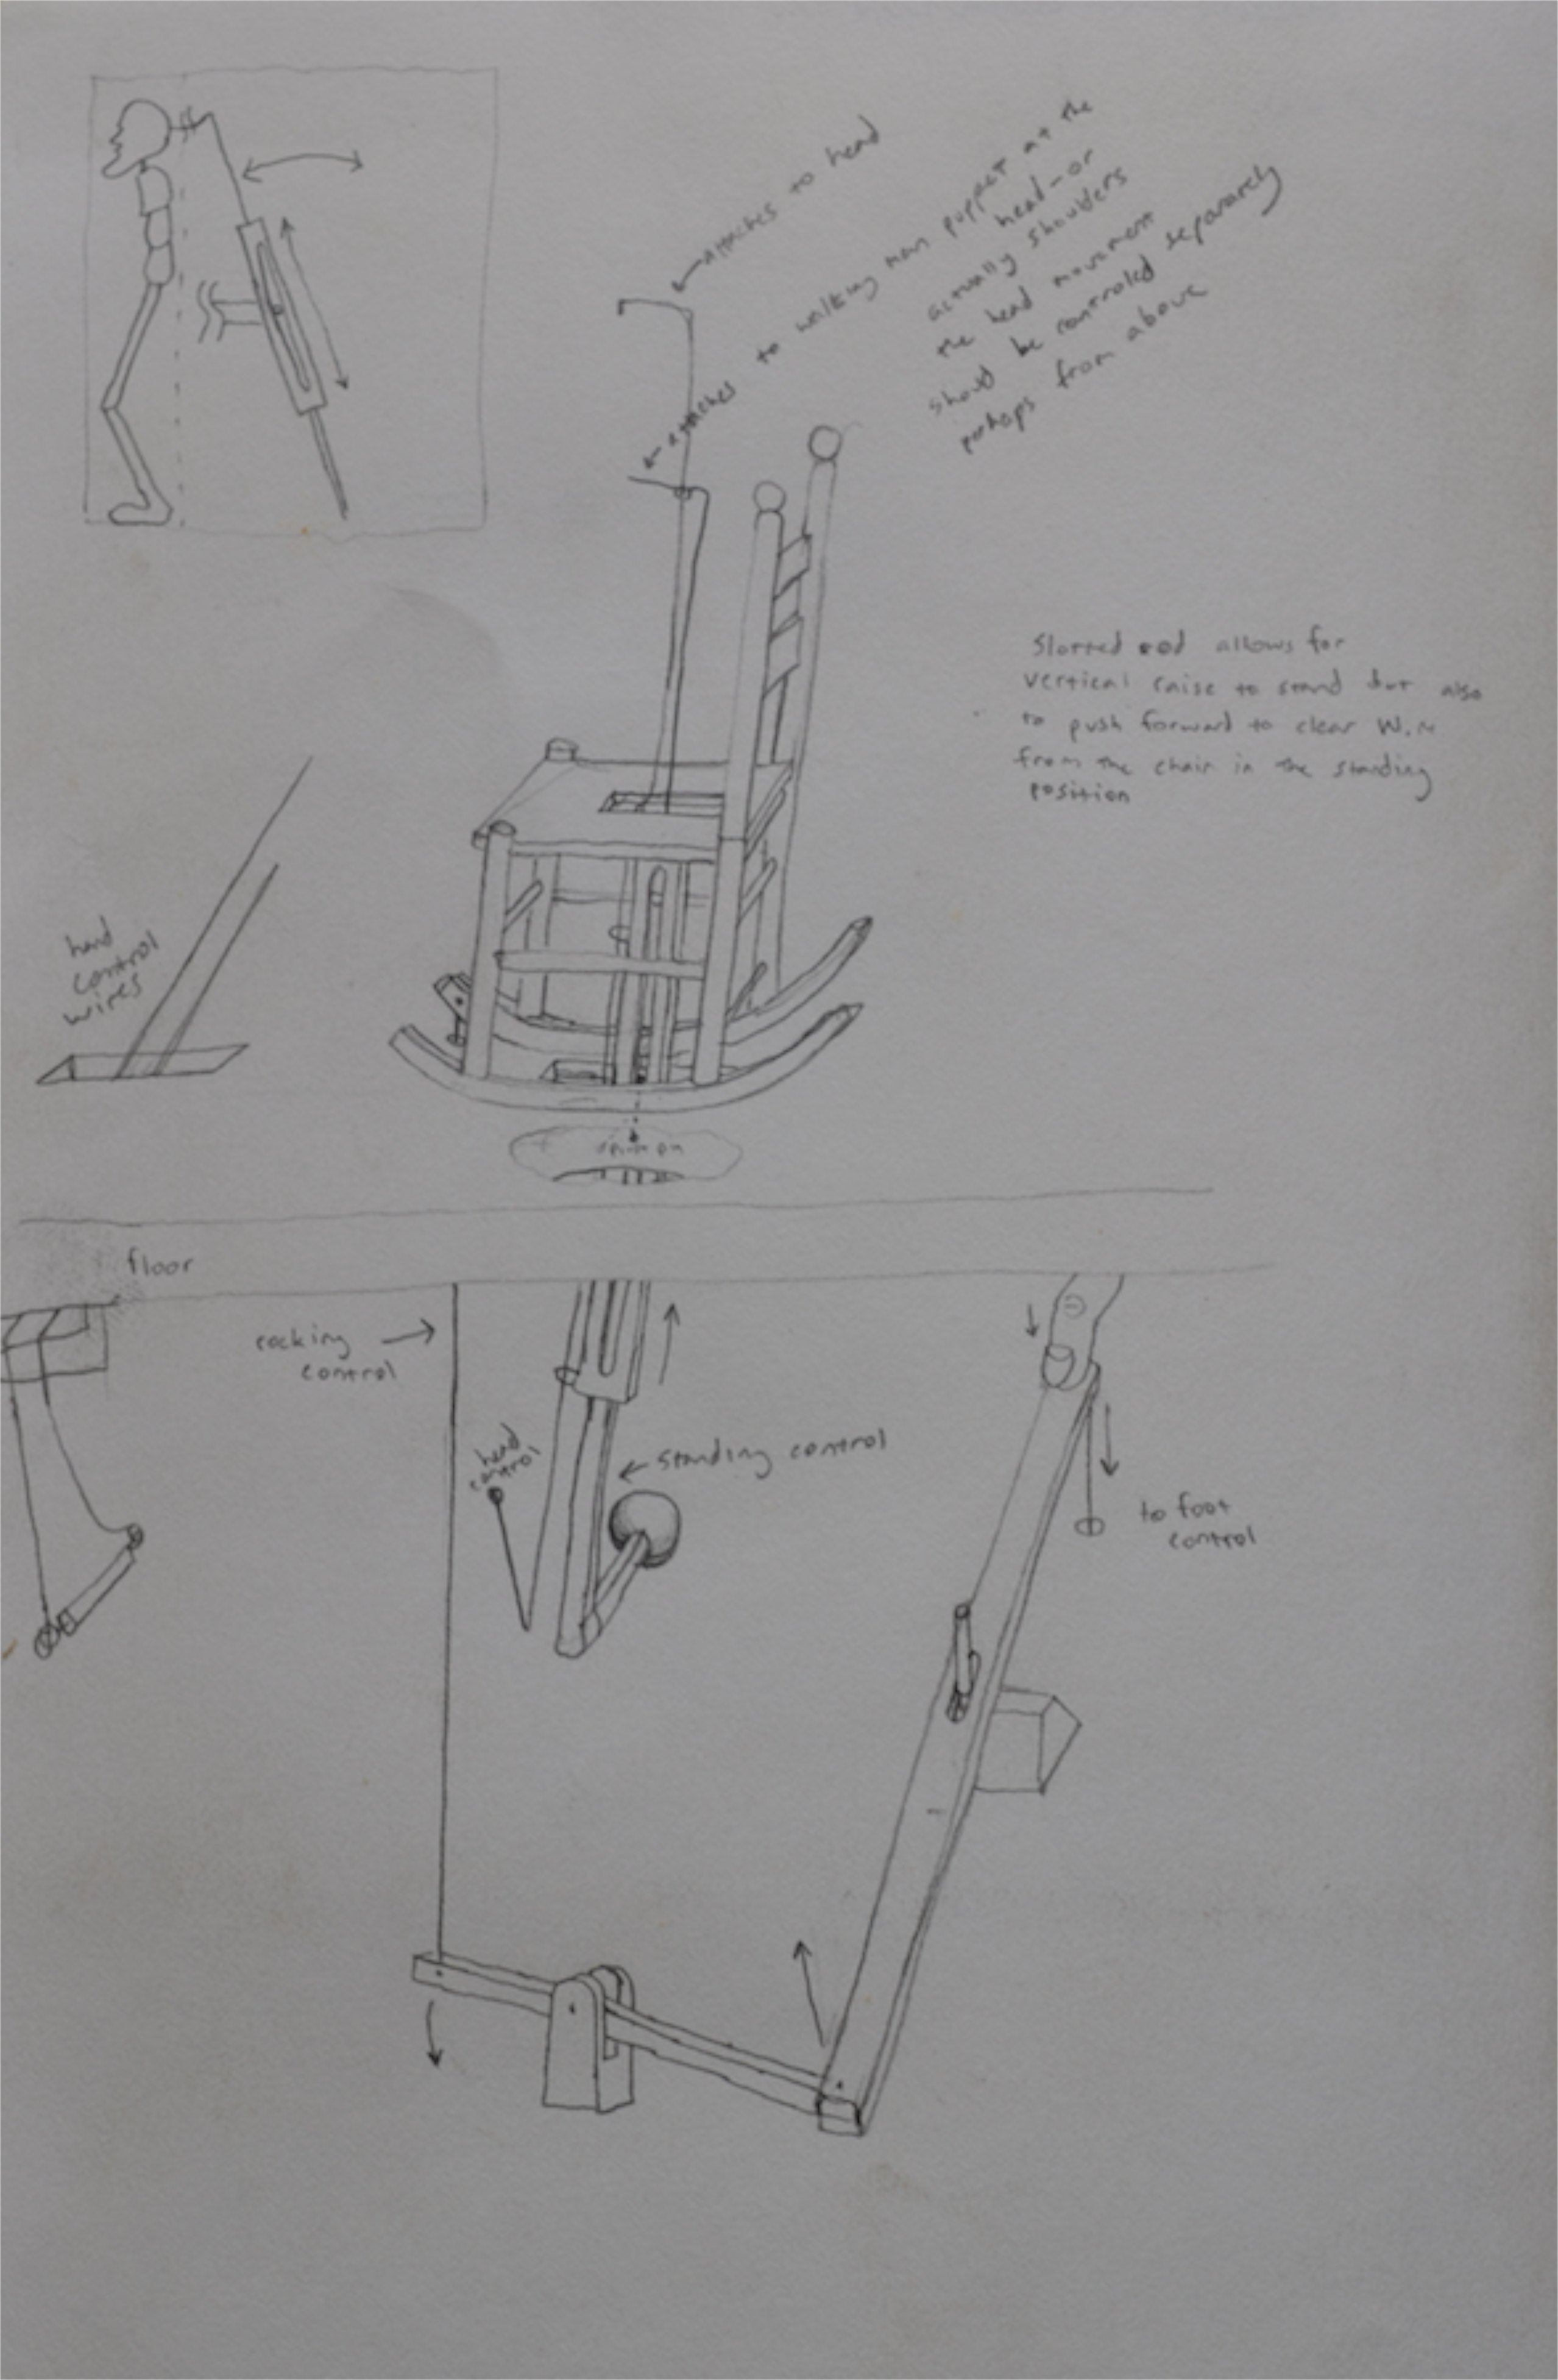 Drawings And Plans For The Theater And Puppet Mechanics